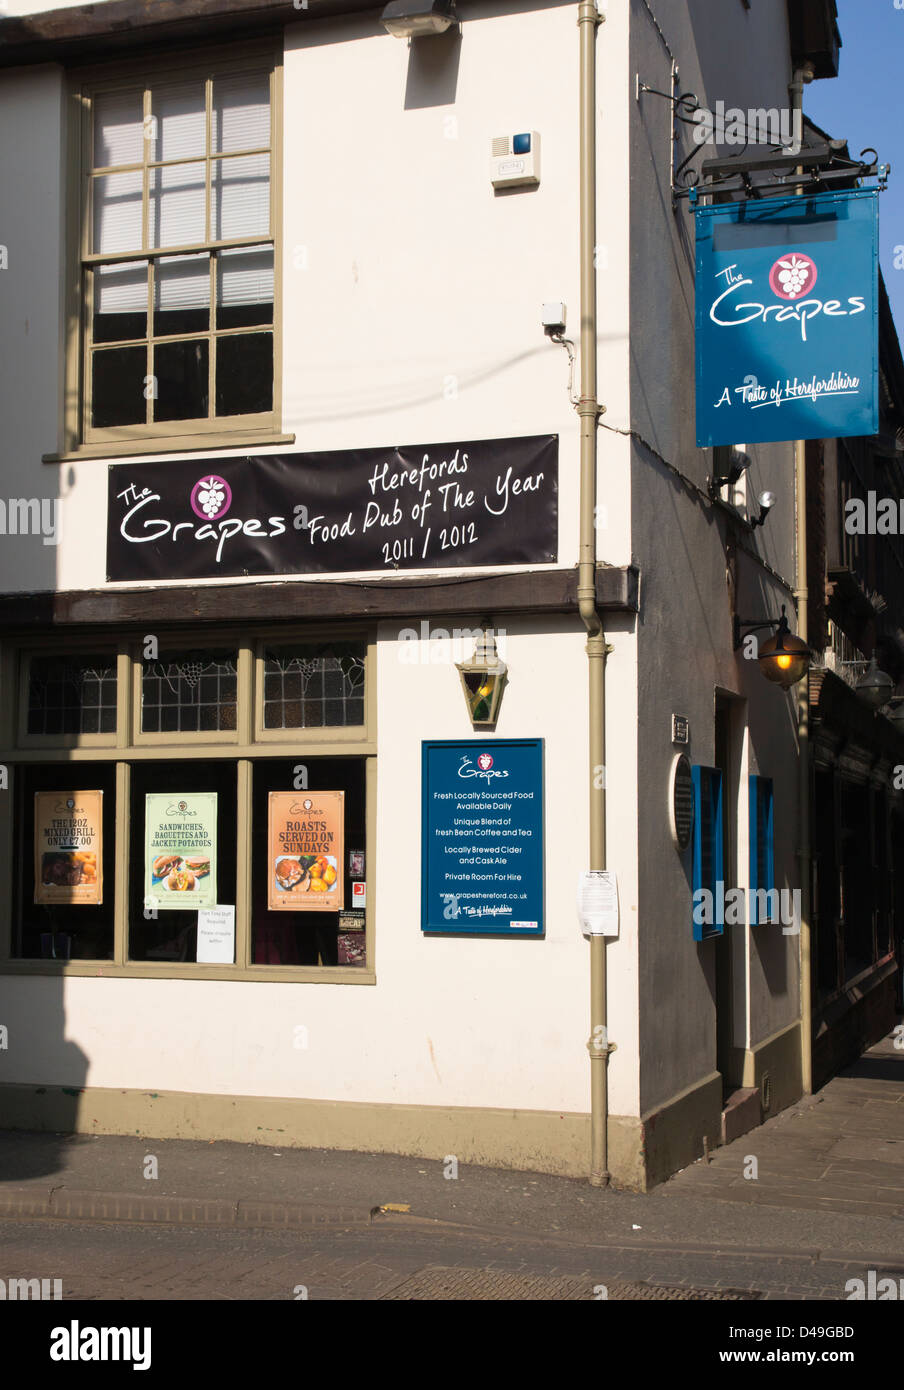 Hereford, The Grapes Pub - Stock Image